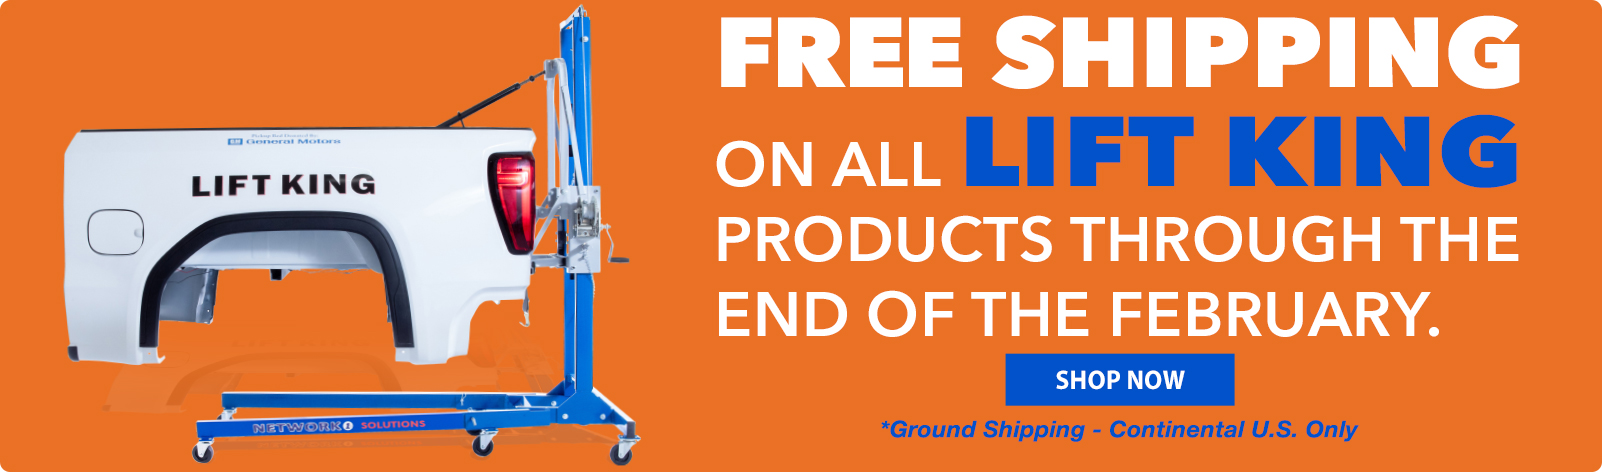 Free Shipping on all Lift King Products!